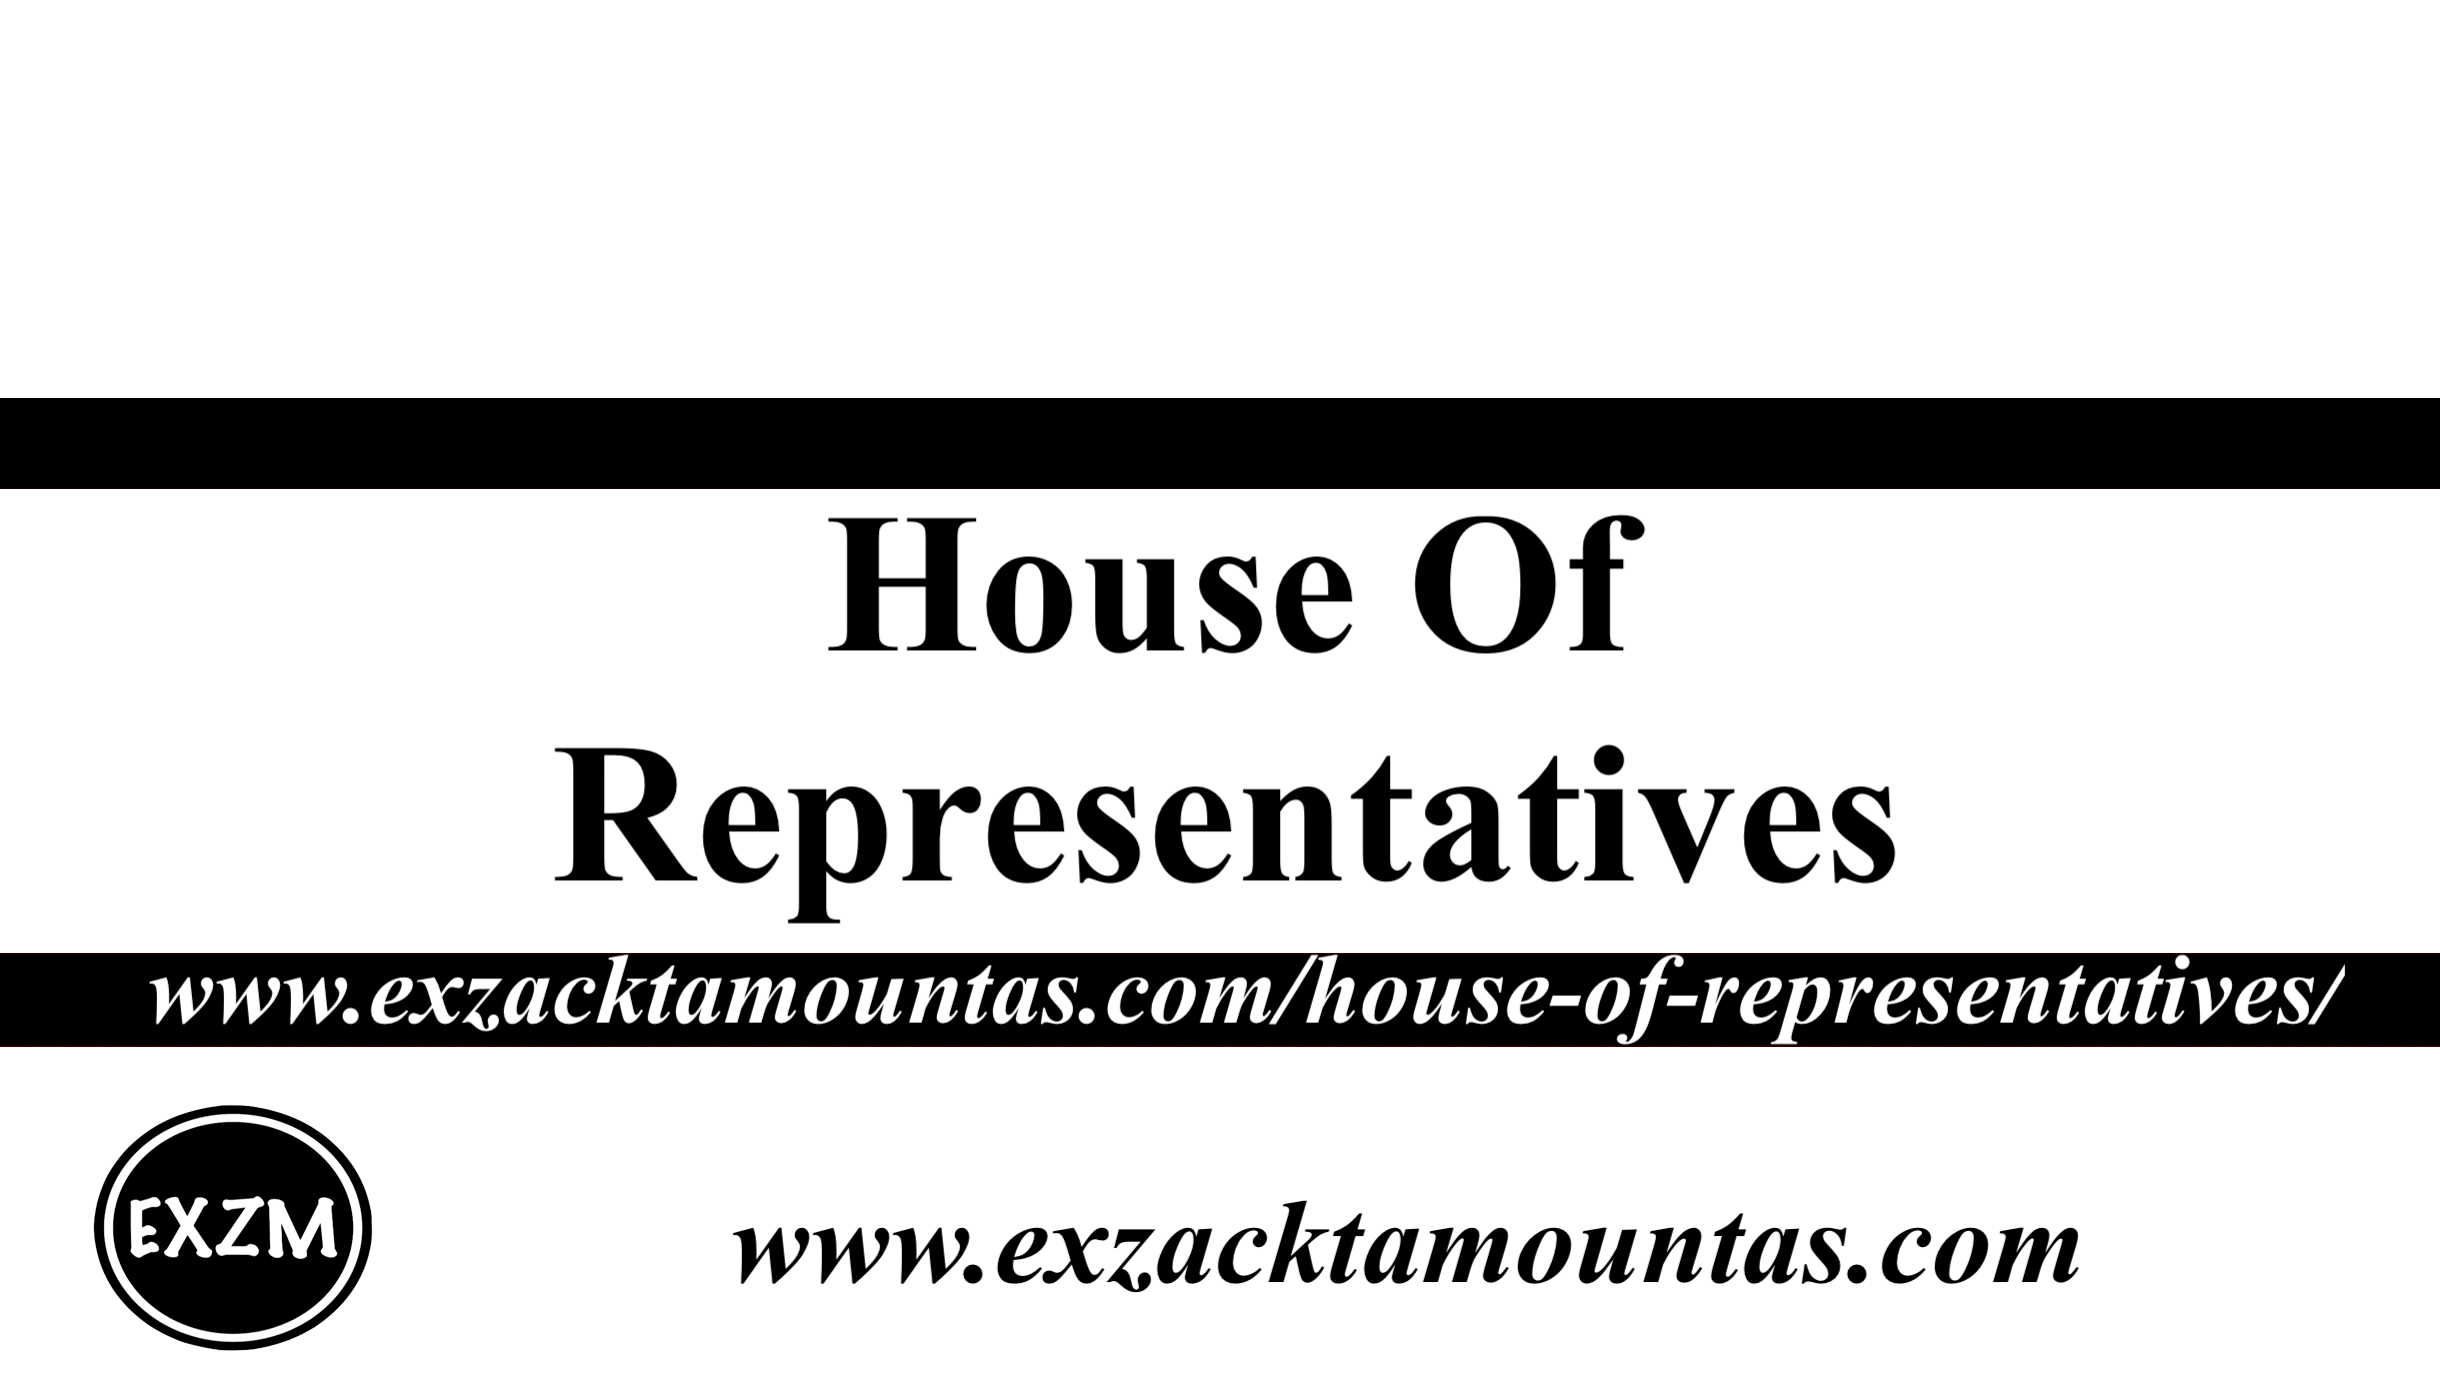 House Of Representatives EXZM 11 5 2019